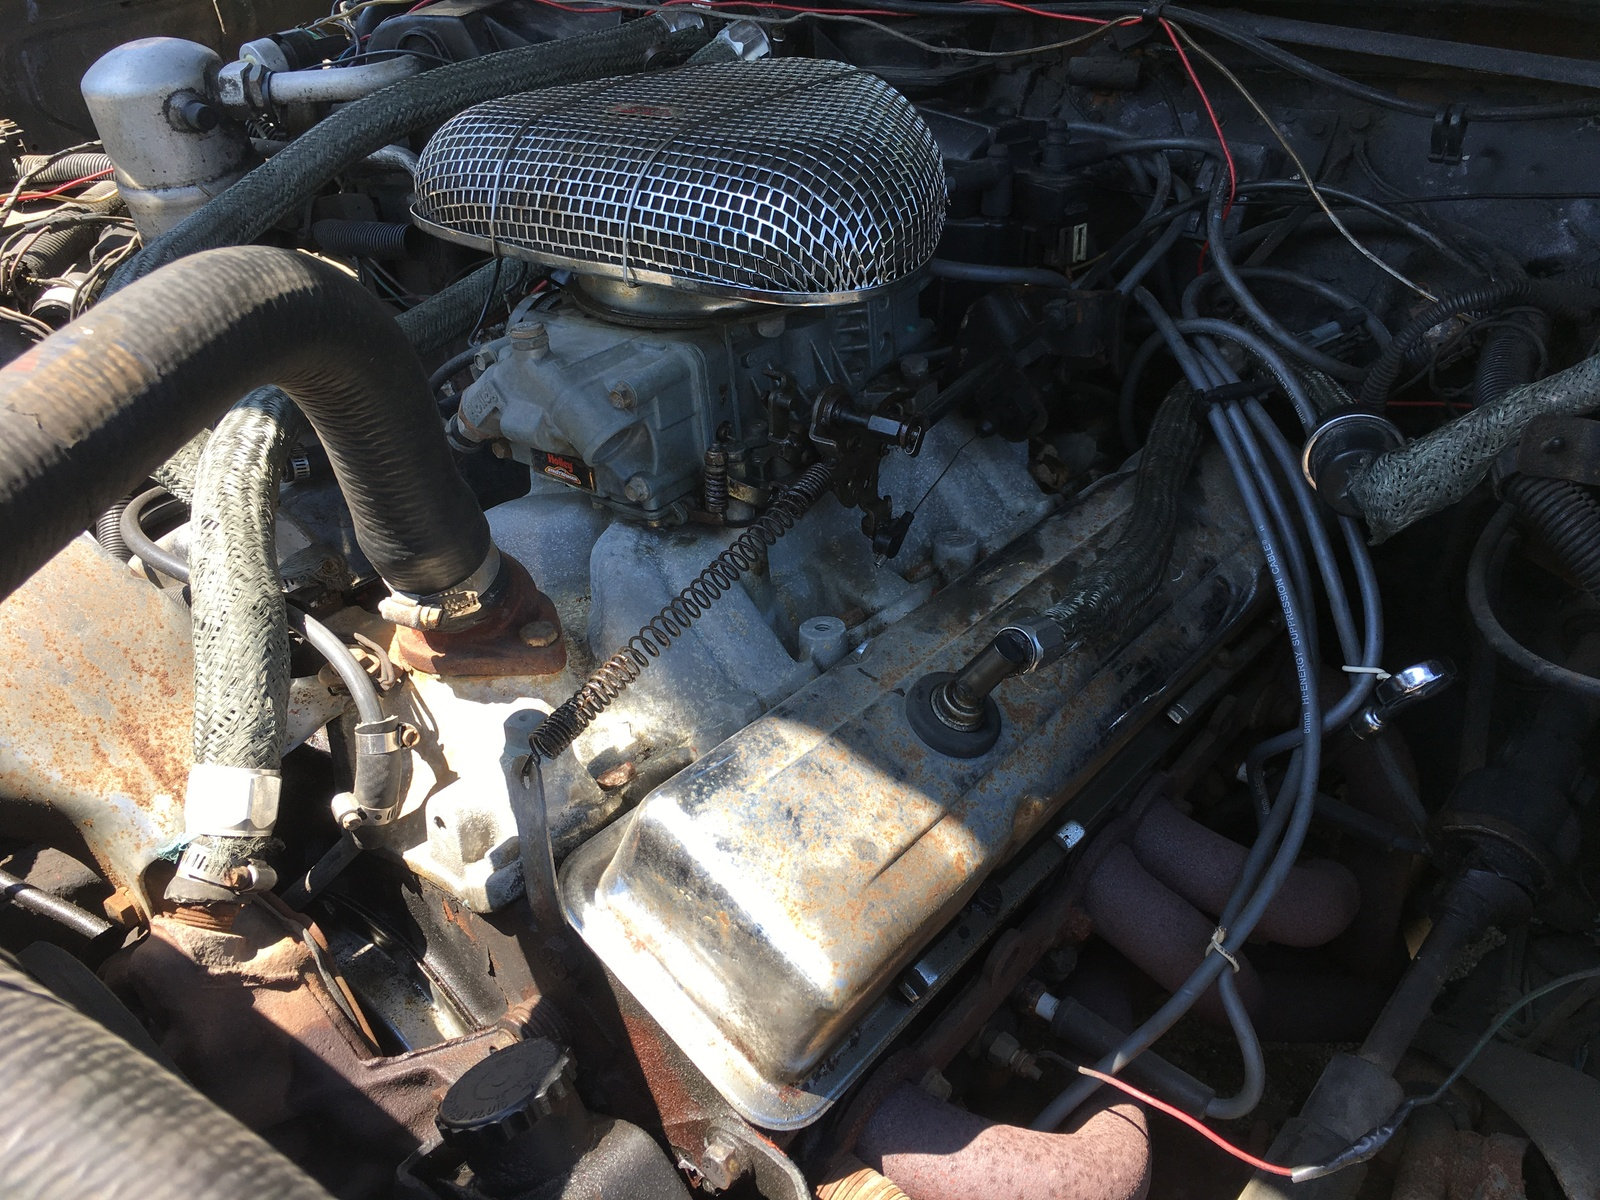 Chevrolet Monte Carlo Questions Engine Cargurus Buick V6 Block Casting Numbers Here Are Some Photos Guys Thanks For The Help